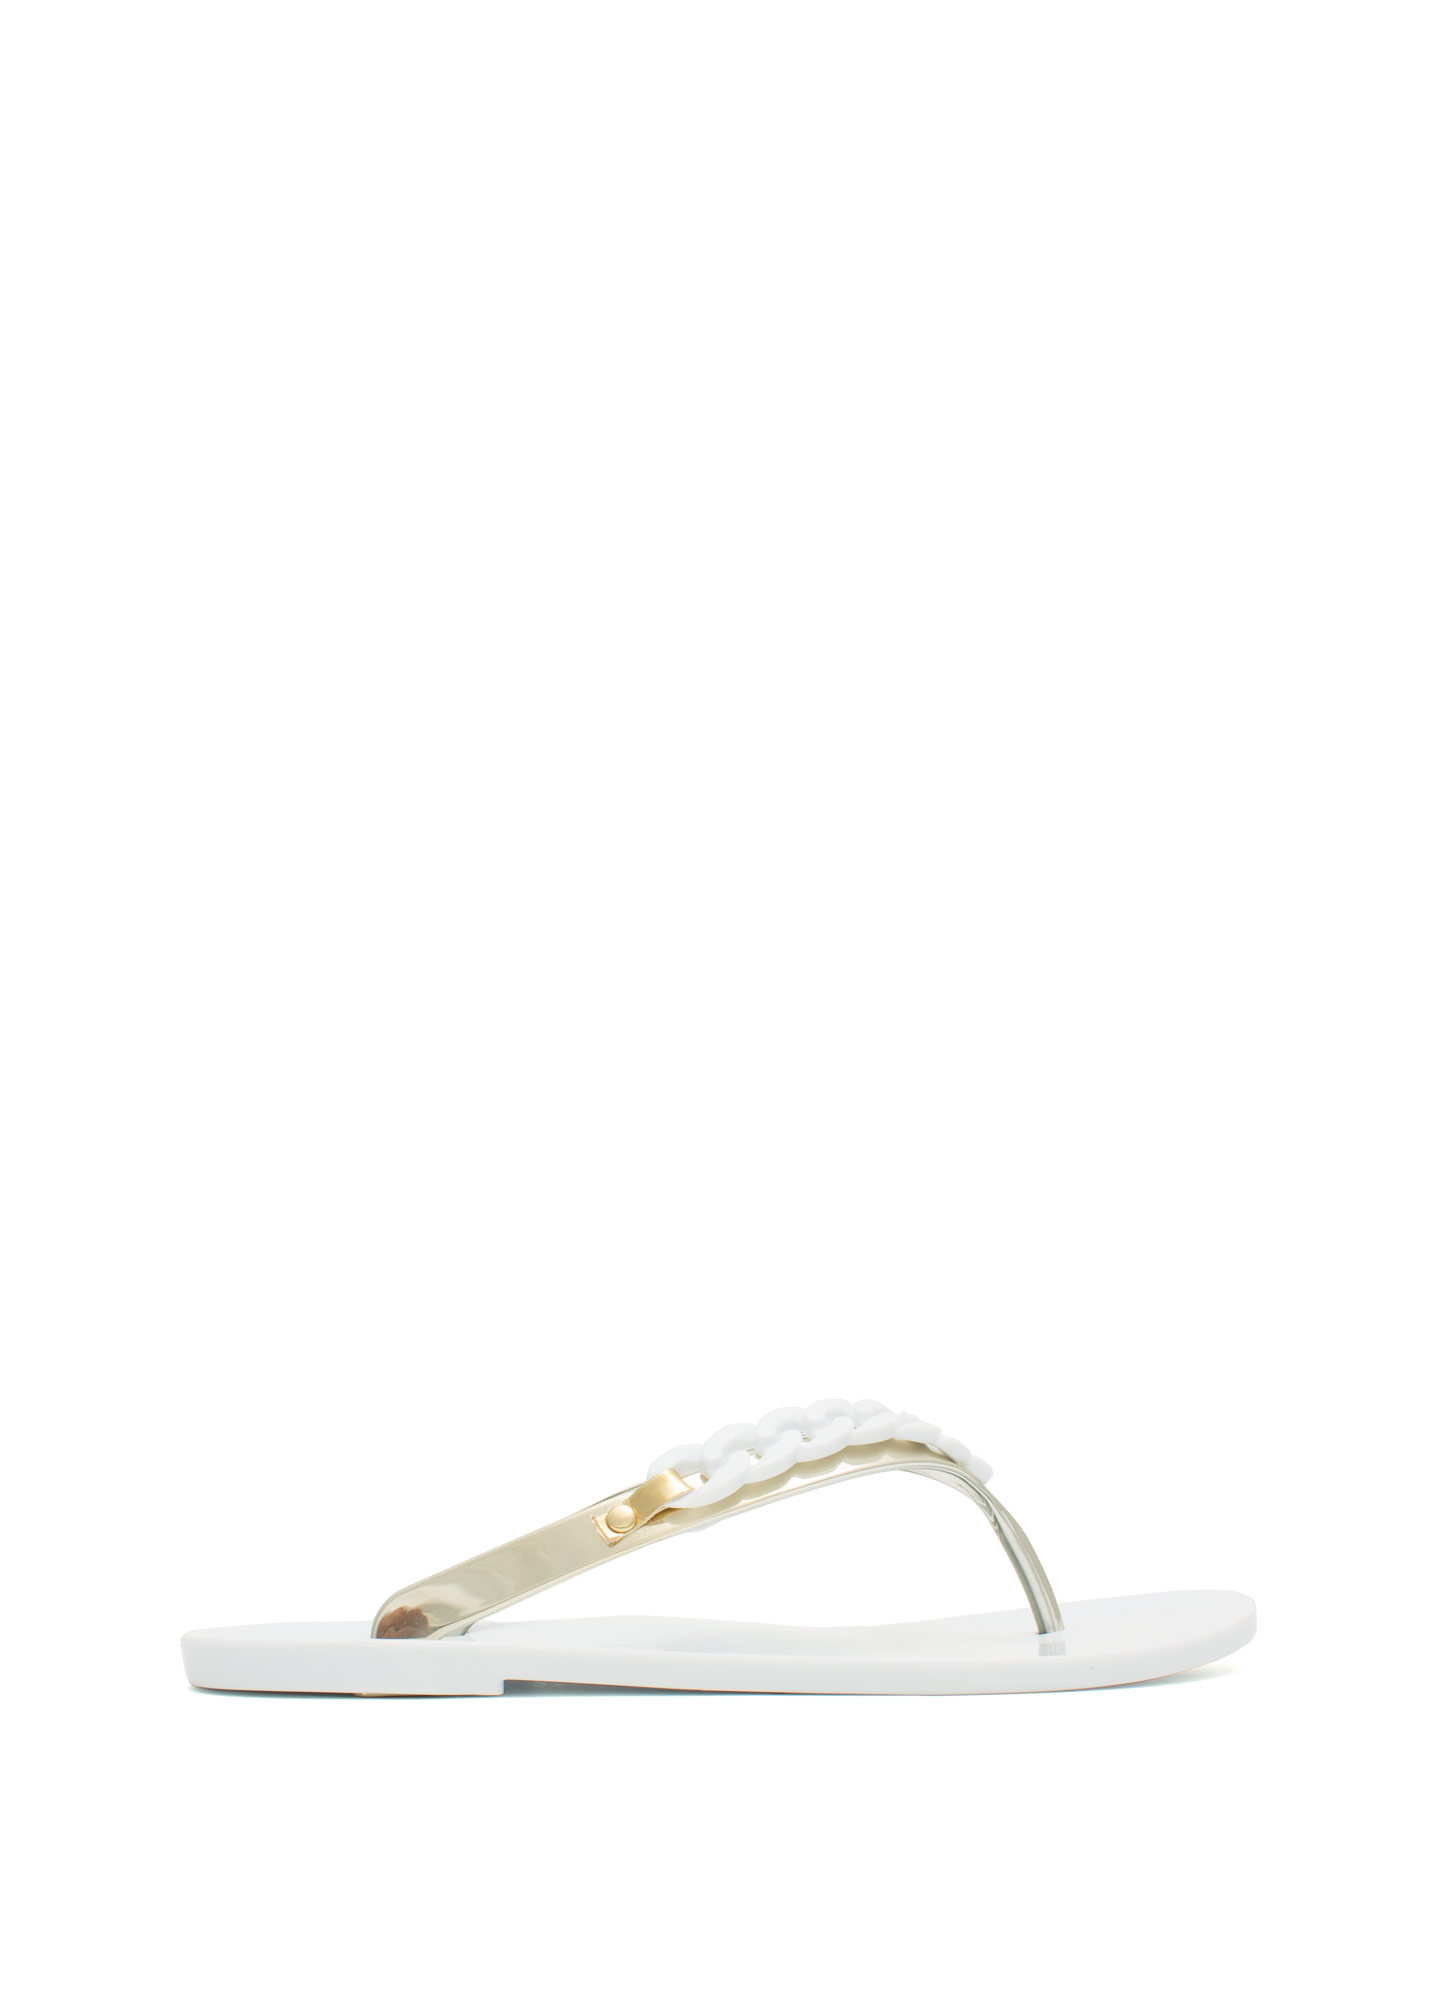 Curb Link Jelly Thong Sandals WHITEGOLD